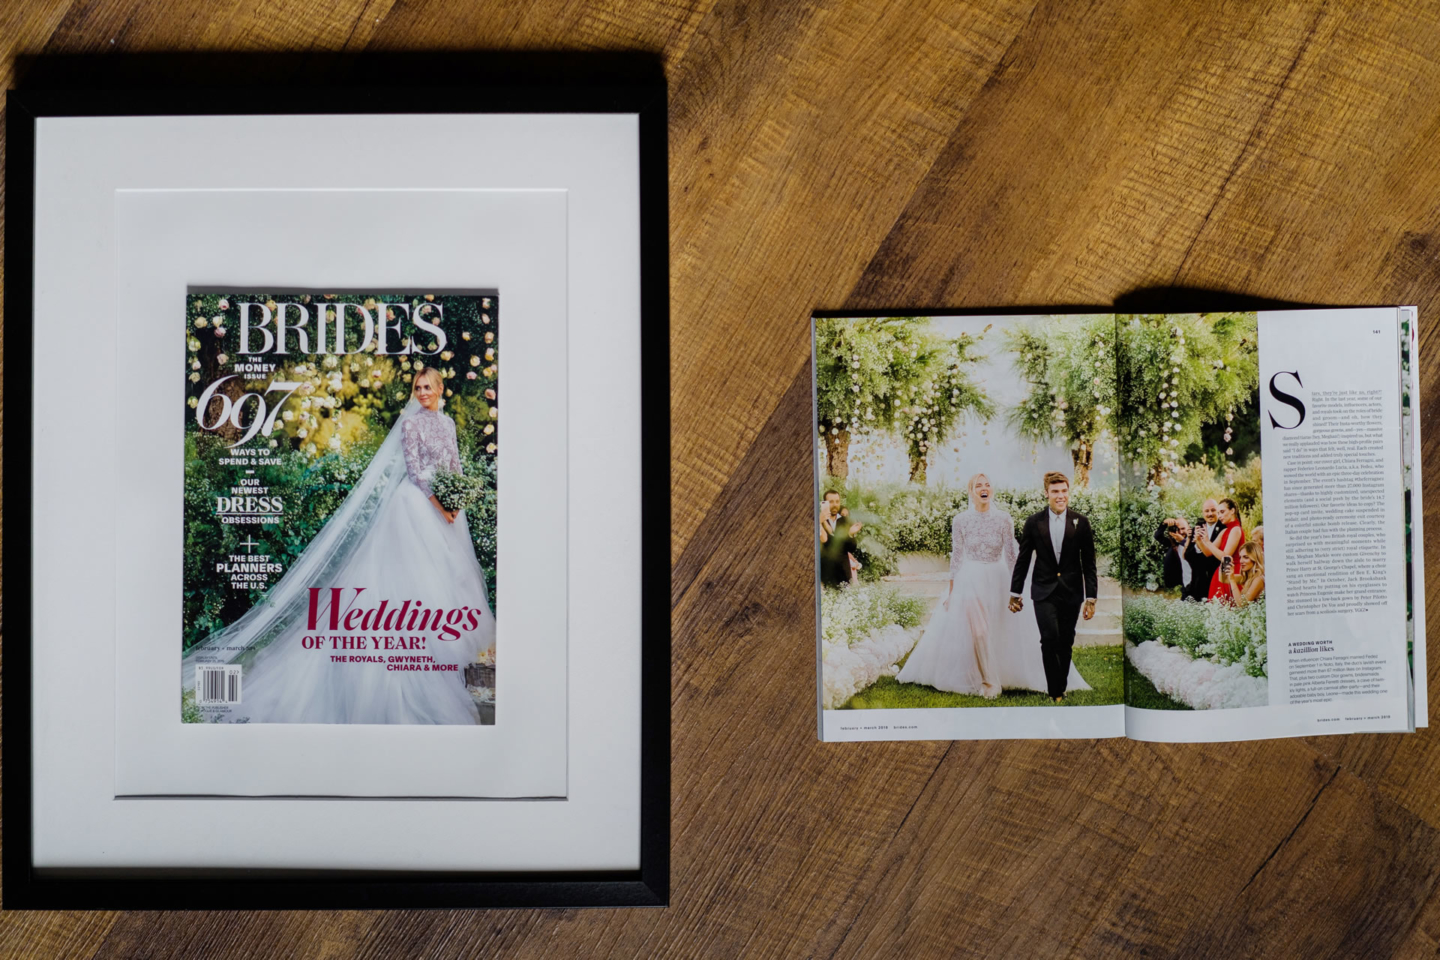 - 3 :: The kiss: how to find the shot that becomes an icon :: Luxury wedding photography - 2 ::  - 3